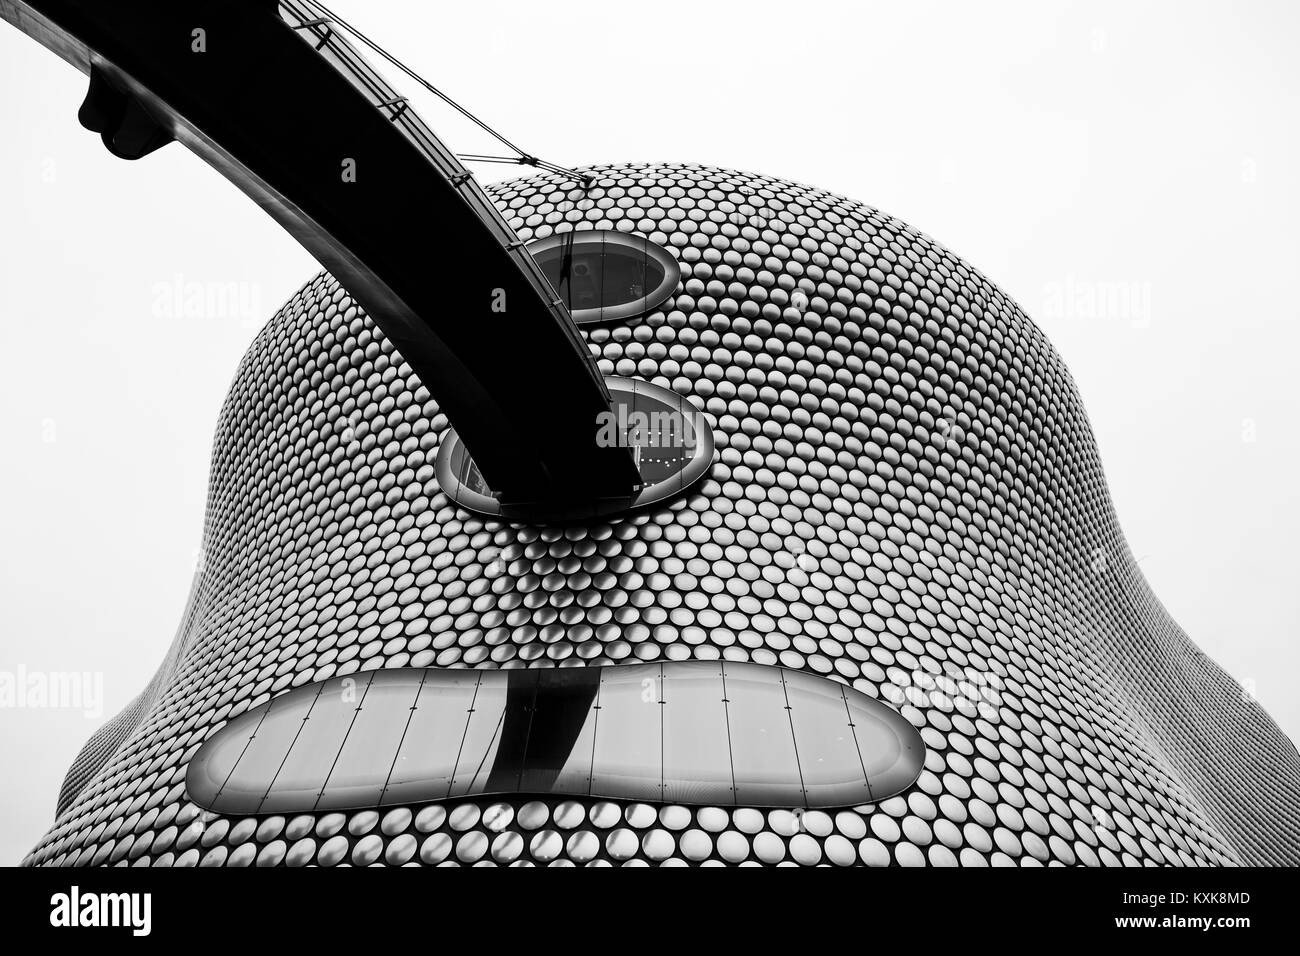 Black and white image looking up at the iconic Selfridges Building in the heart of Birmingham city centre.  The - Stock Image